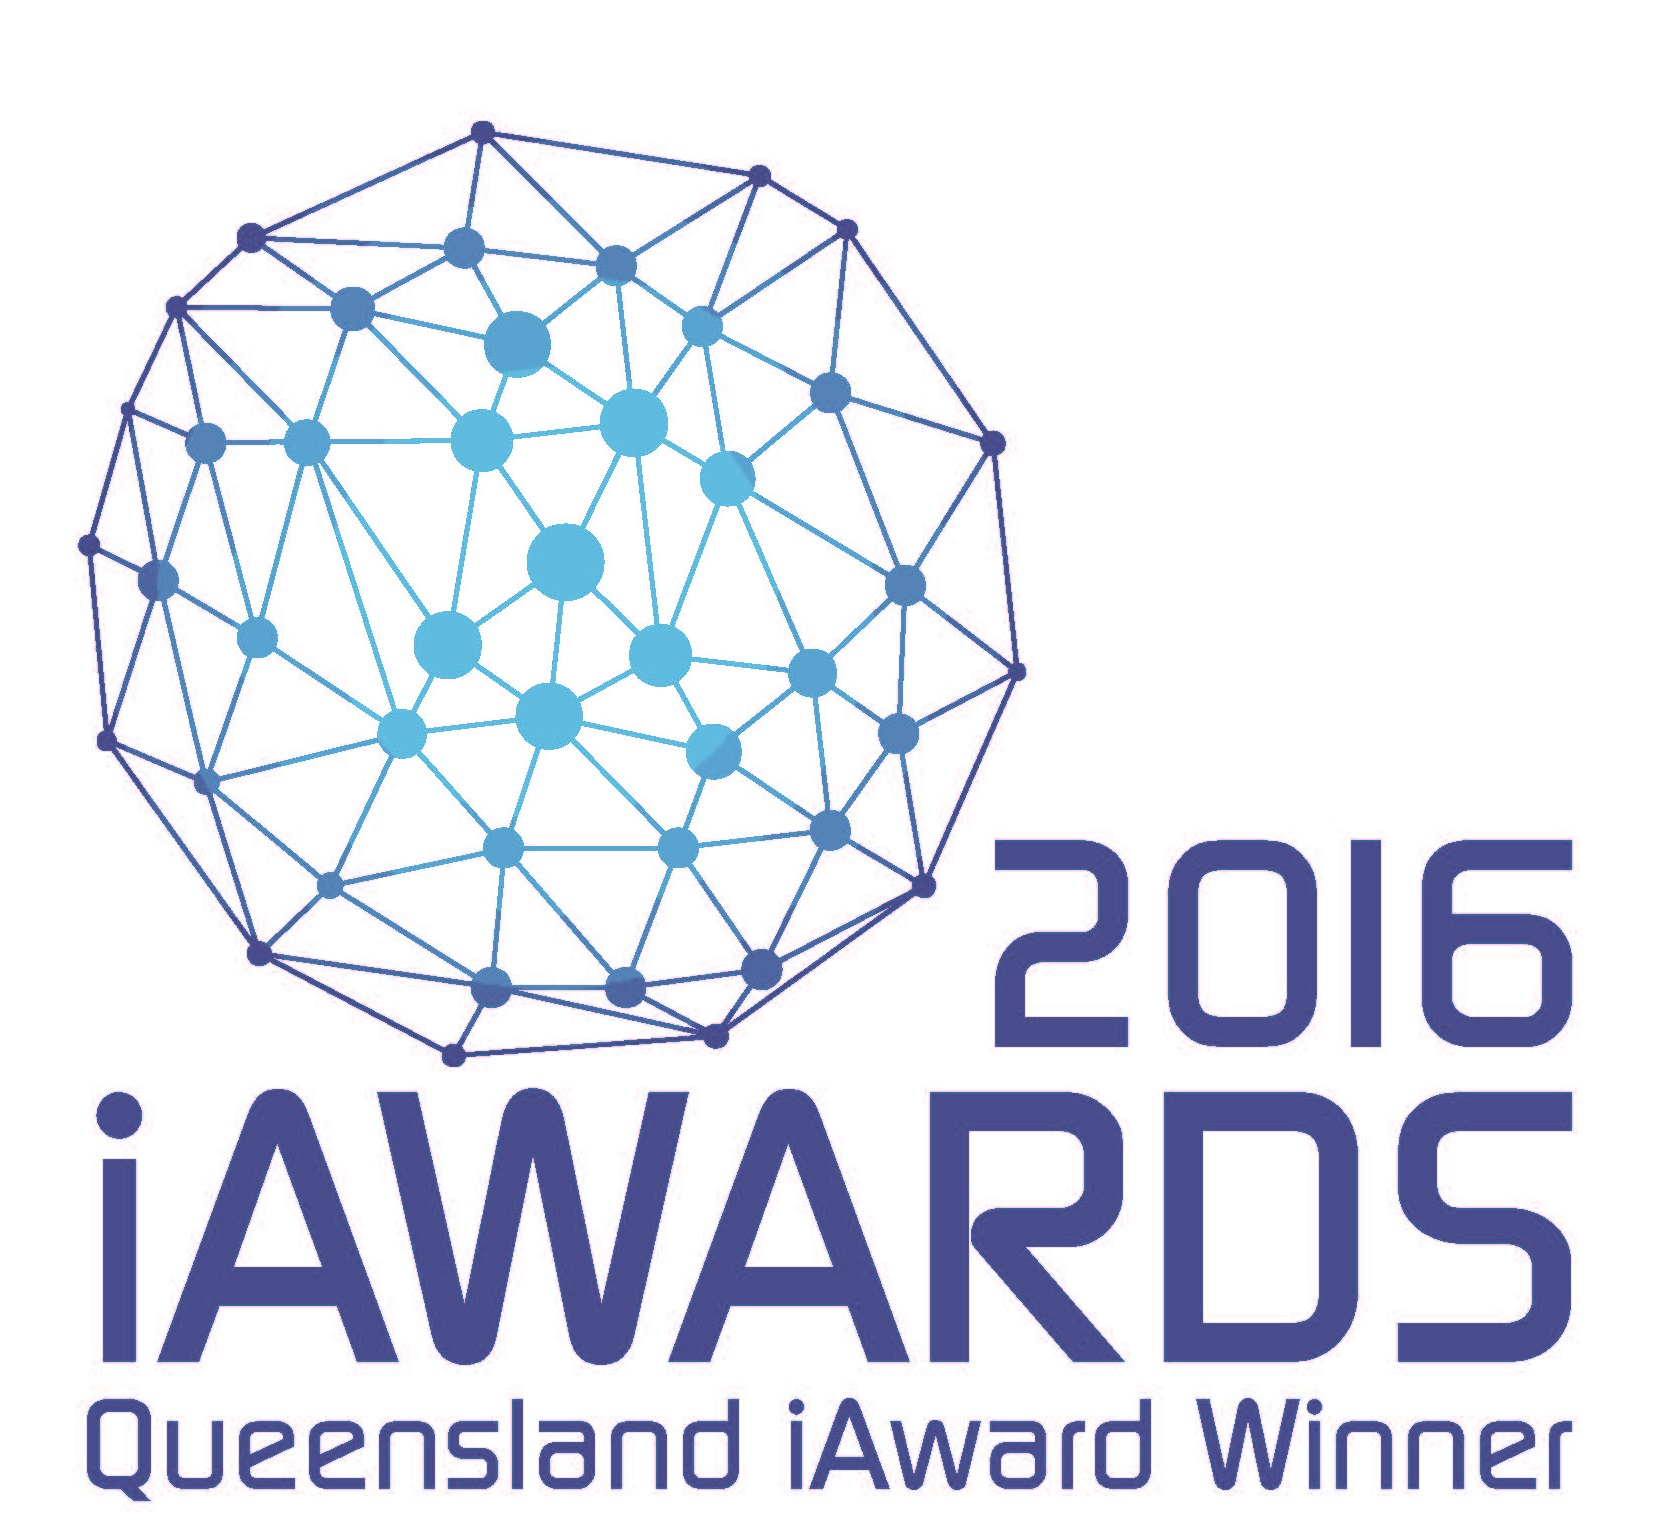 Queensland iAward winner